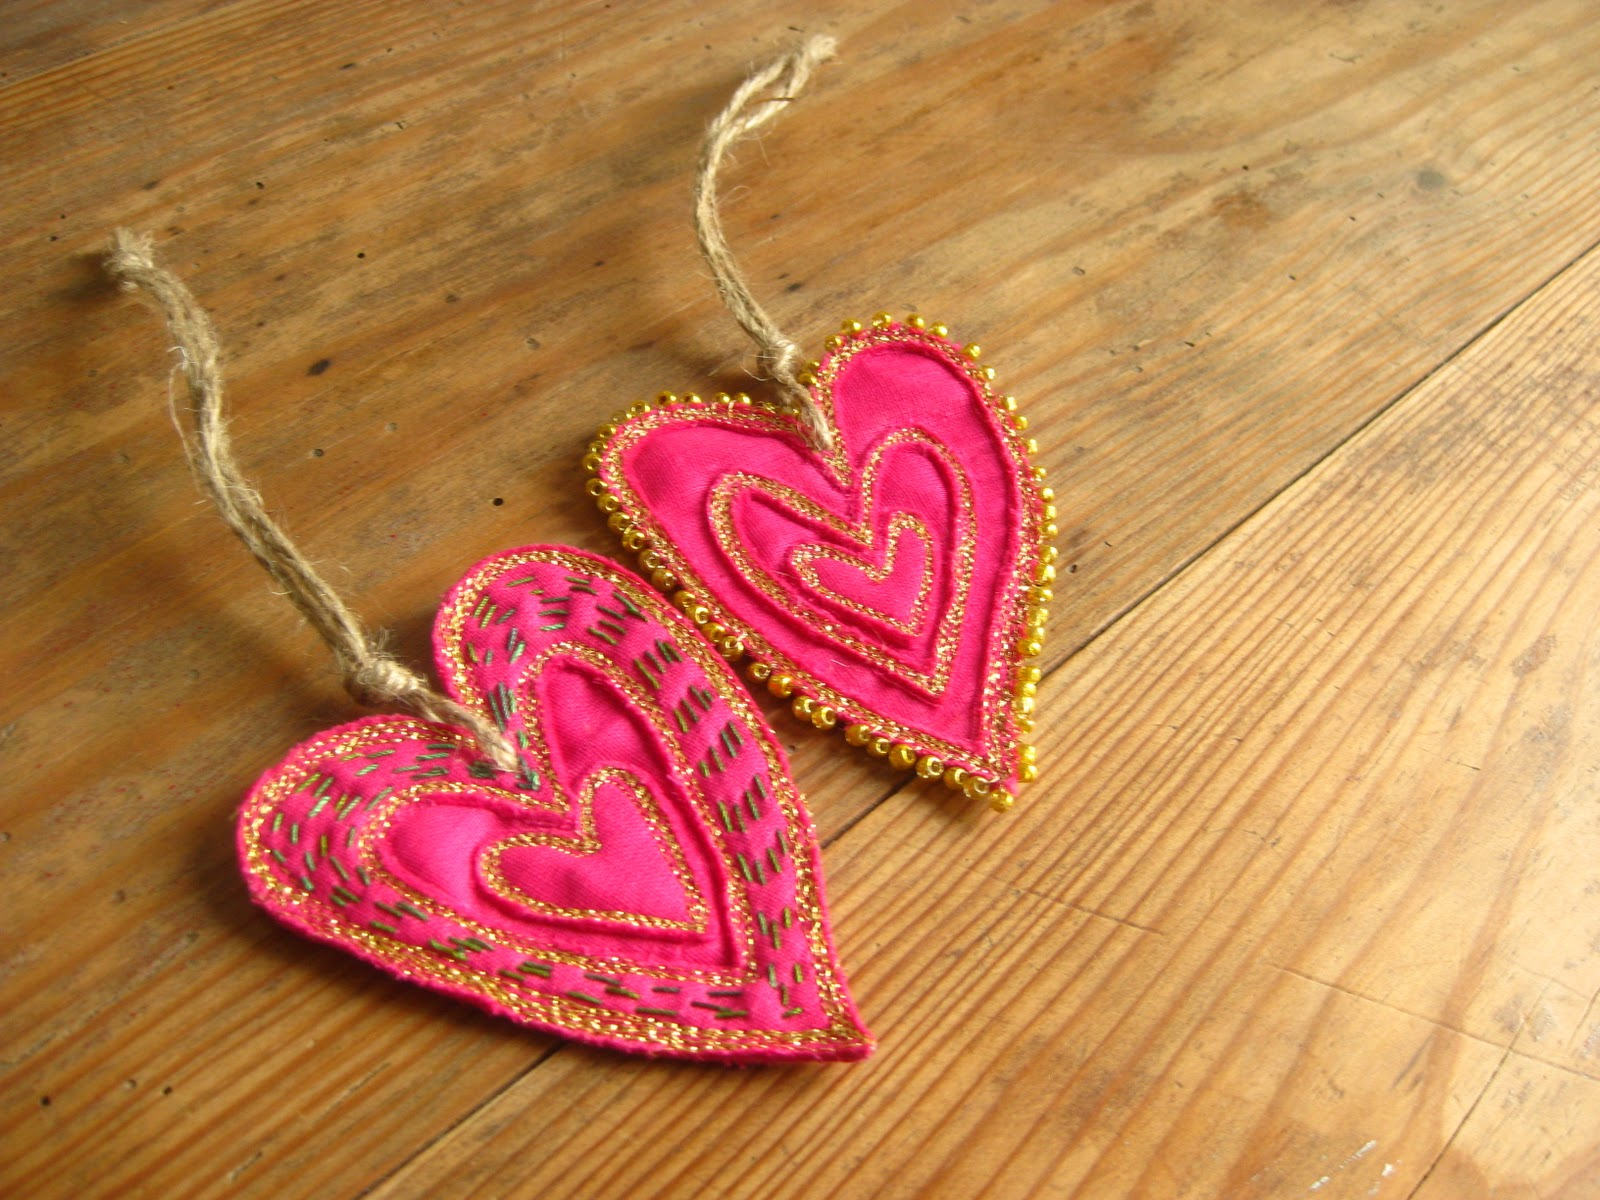 Sewdanish Scandinavian Textile Art Yoga Unique Heart